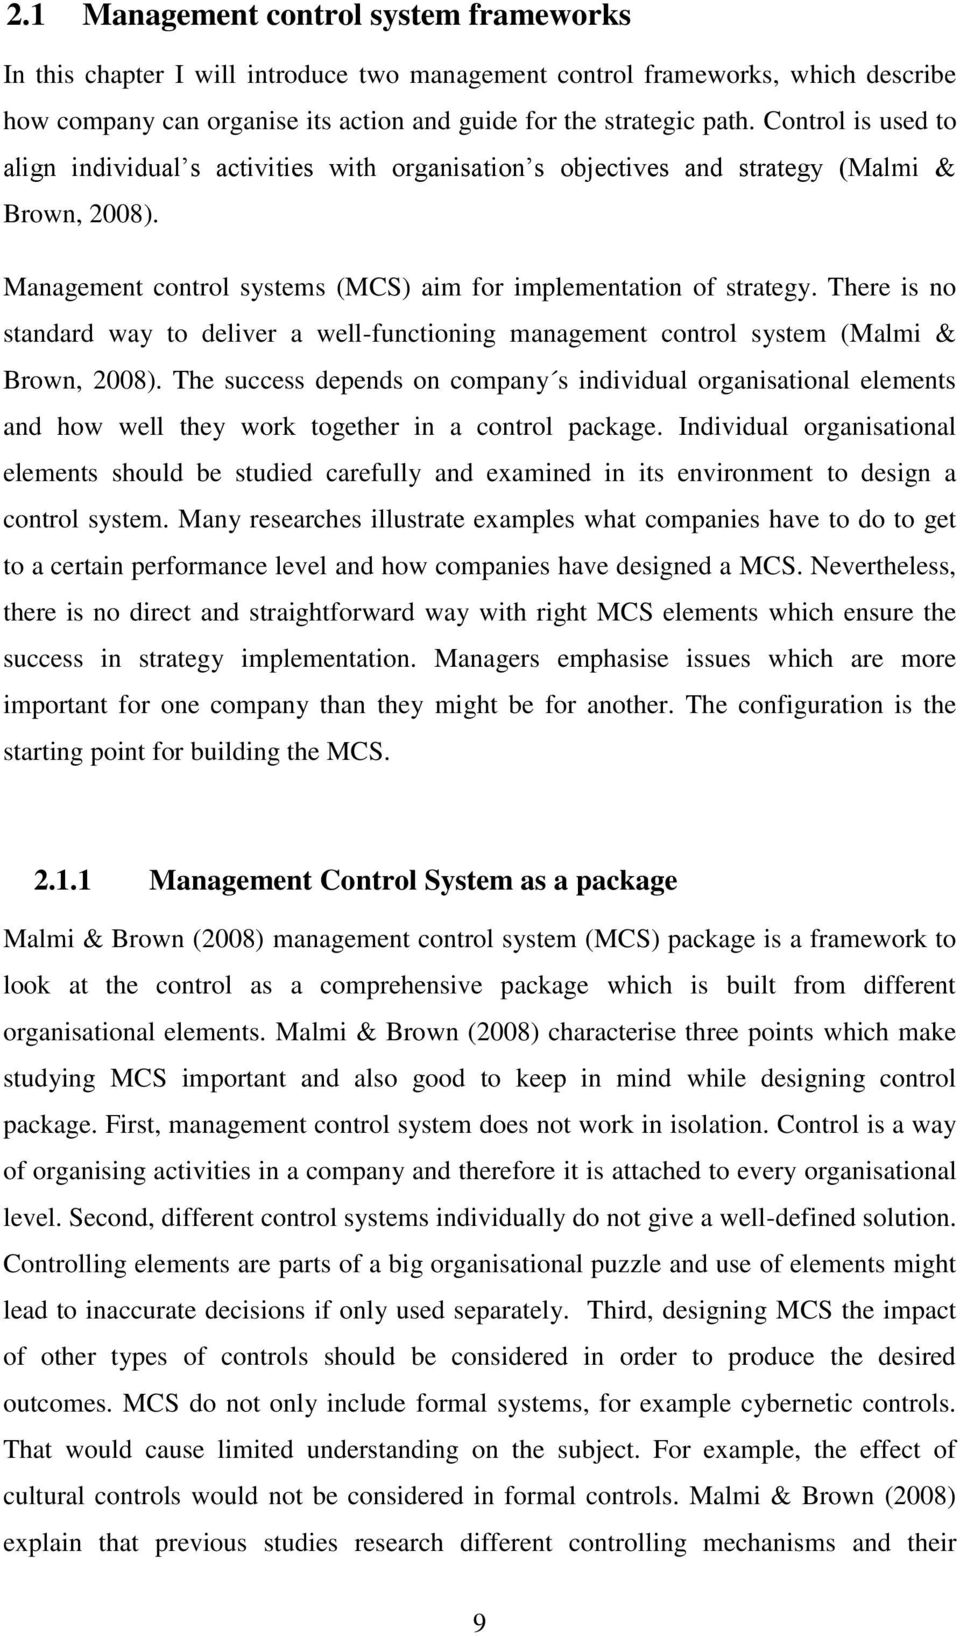 There is no standard way to deliver a well-functioning management control system (Malmi & Brown, 2008).